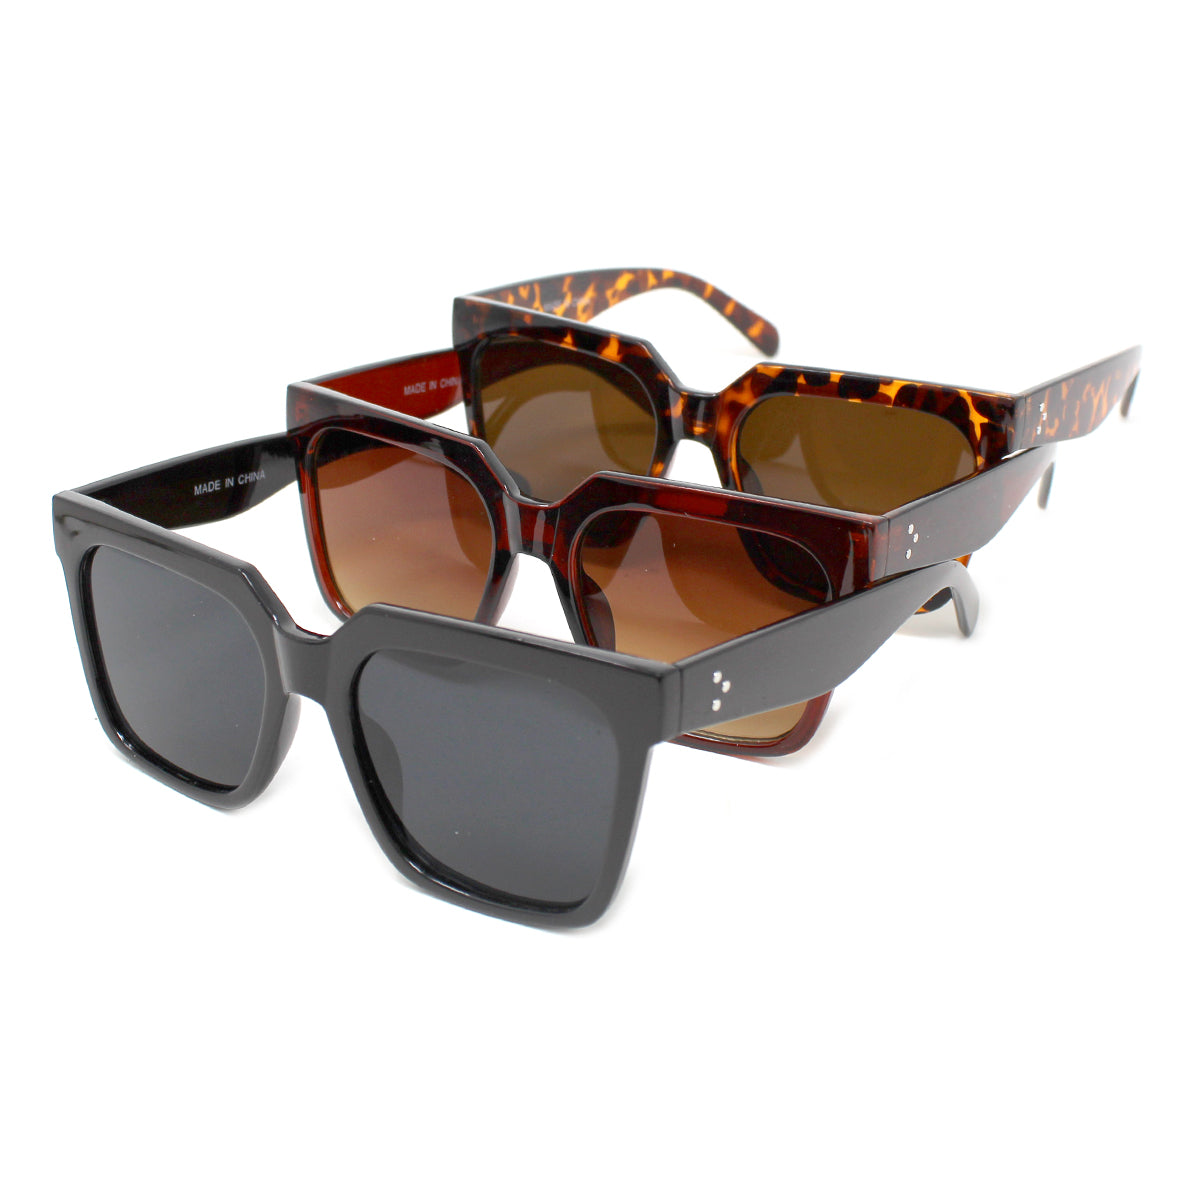 Square Edge Resin Frame Assorted Fashion Sunglasses (12 pieces)